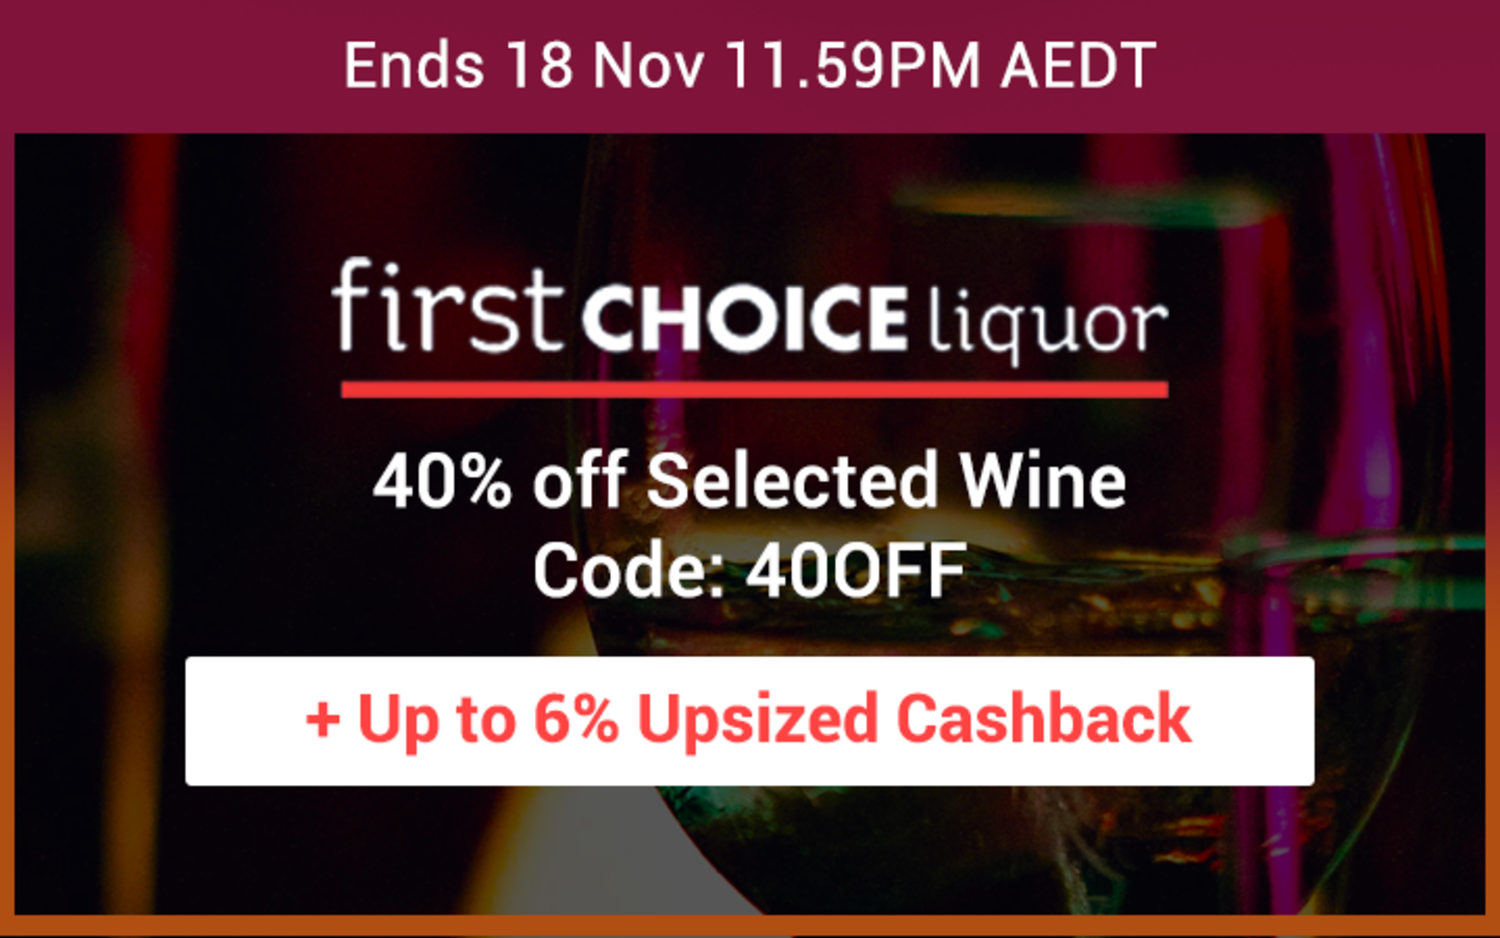 First Choice Liquor - 40% off Selected Wine